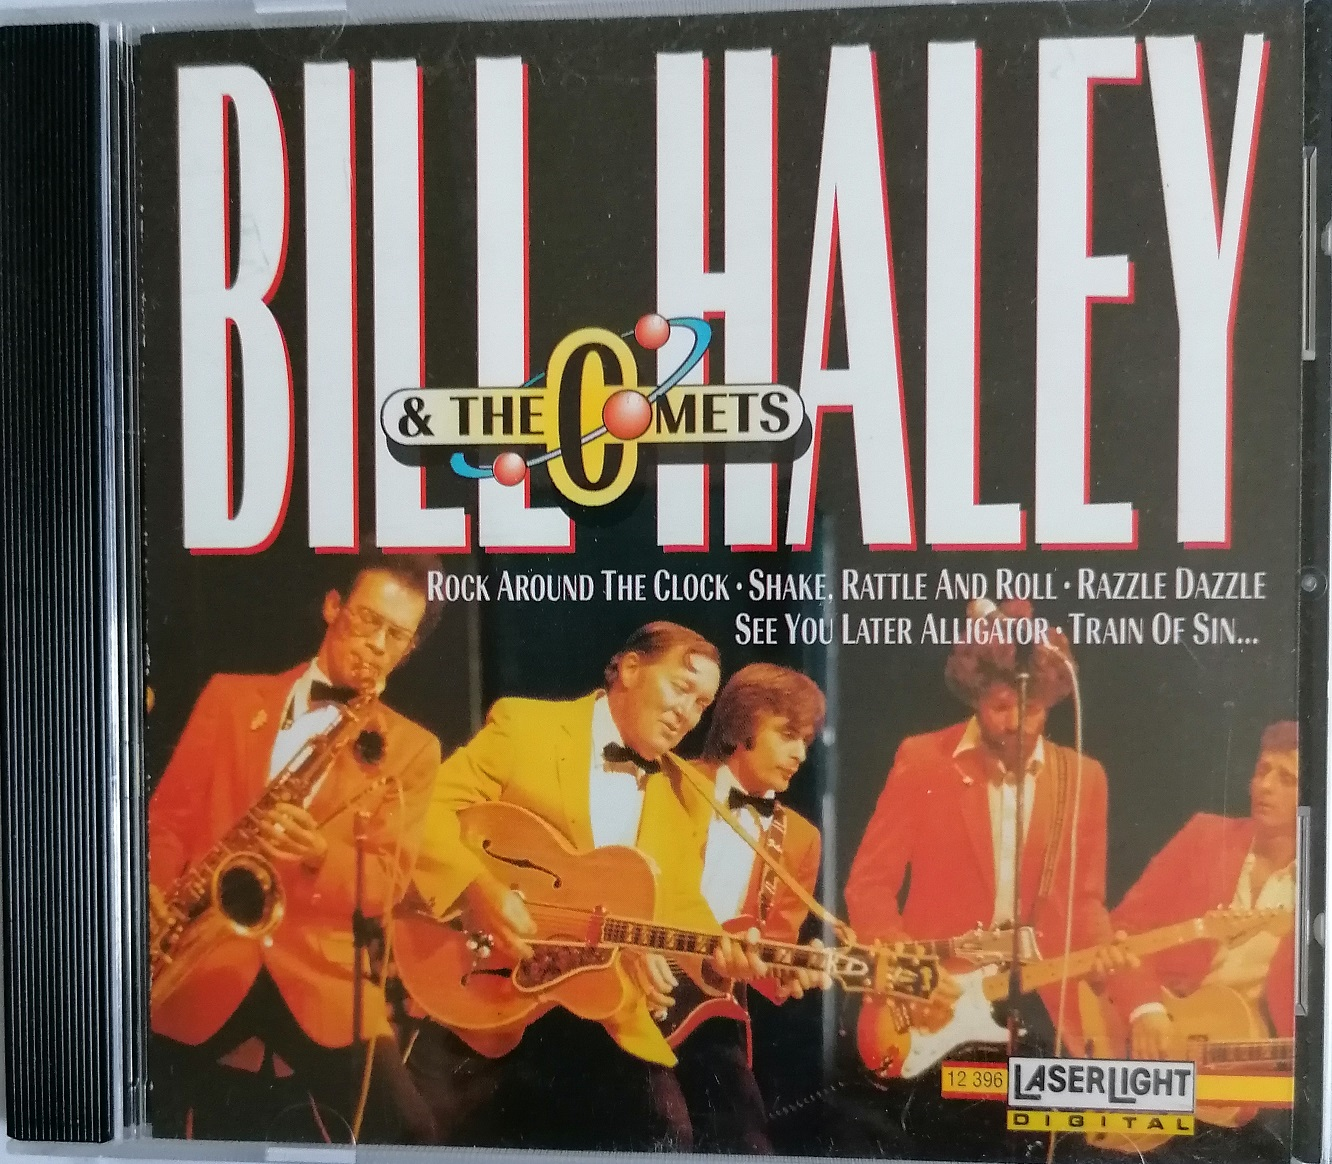 Bill Haley - The Comets - CD